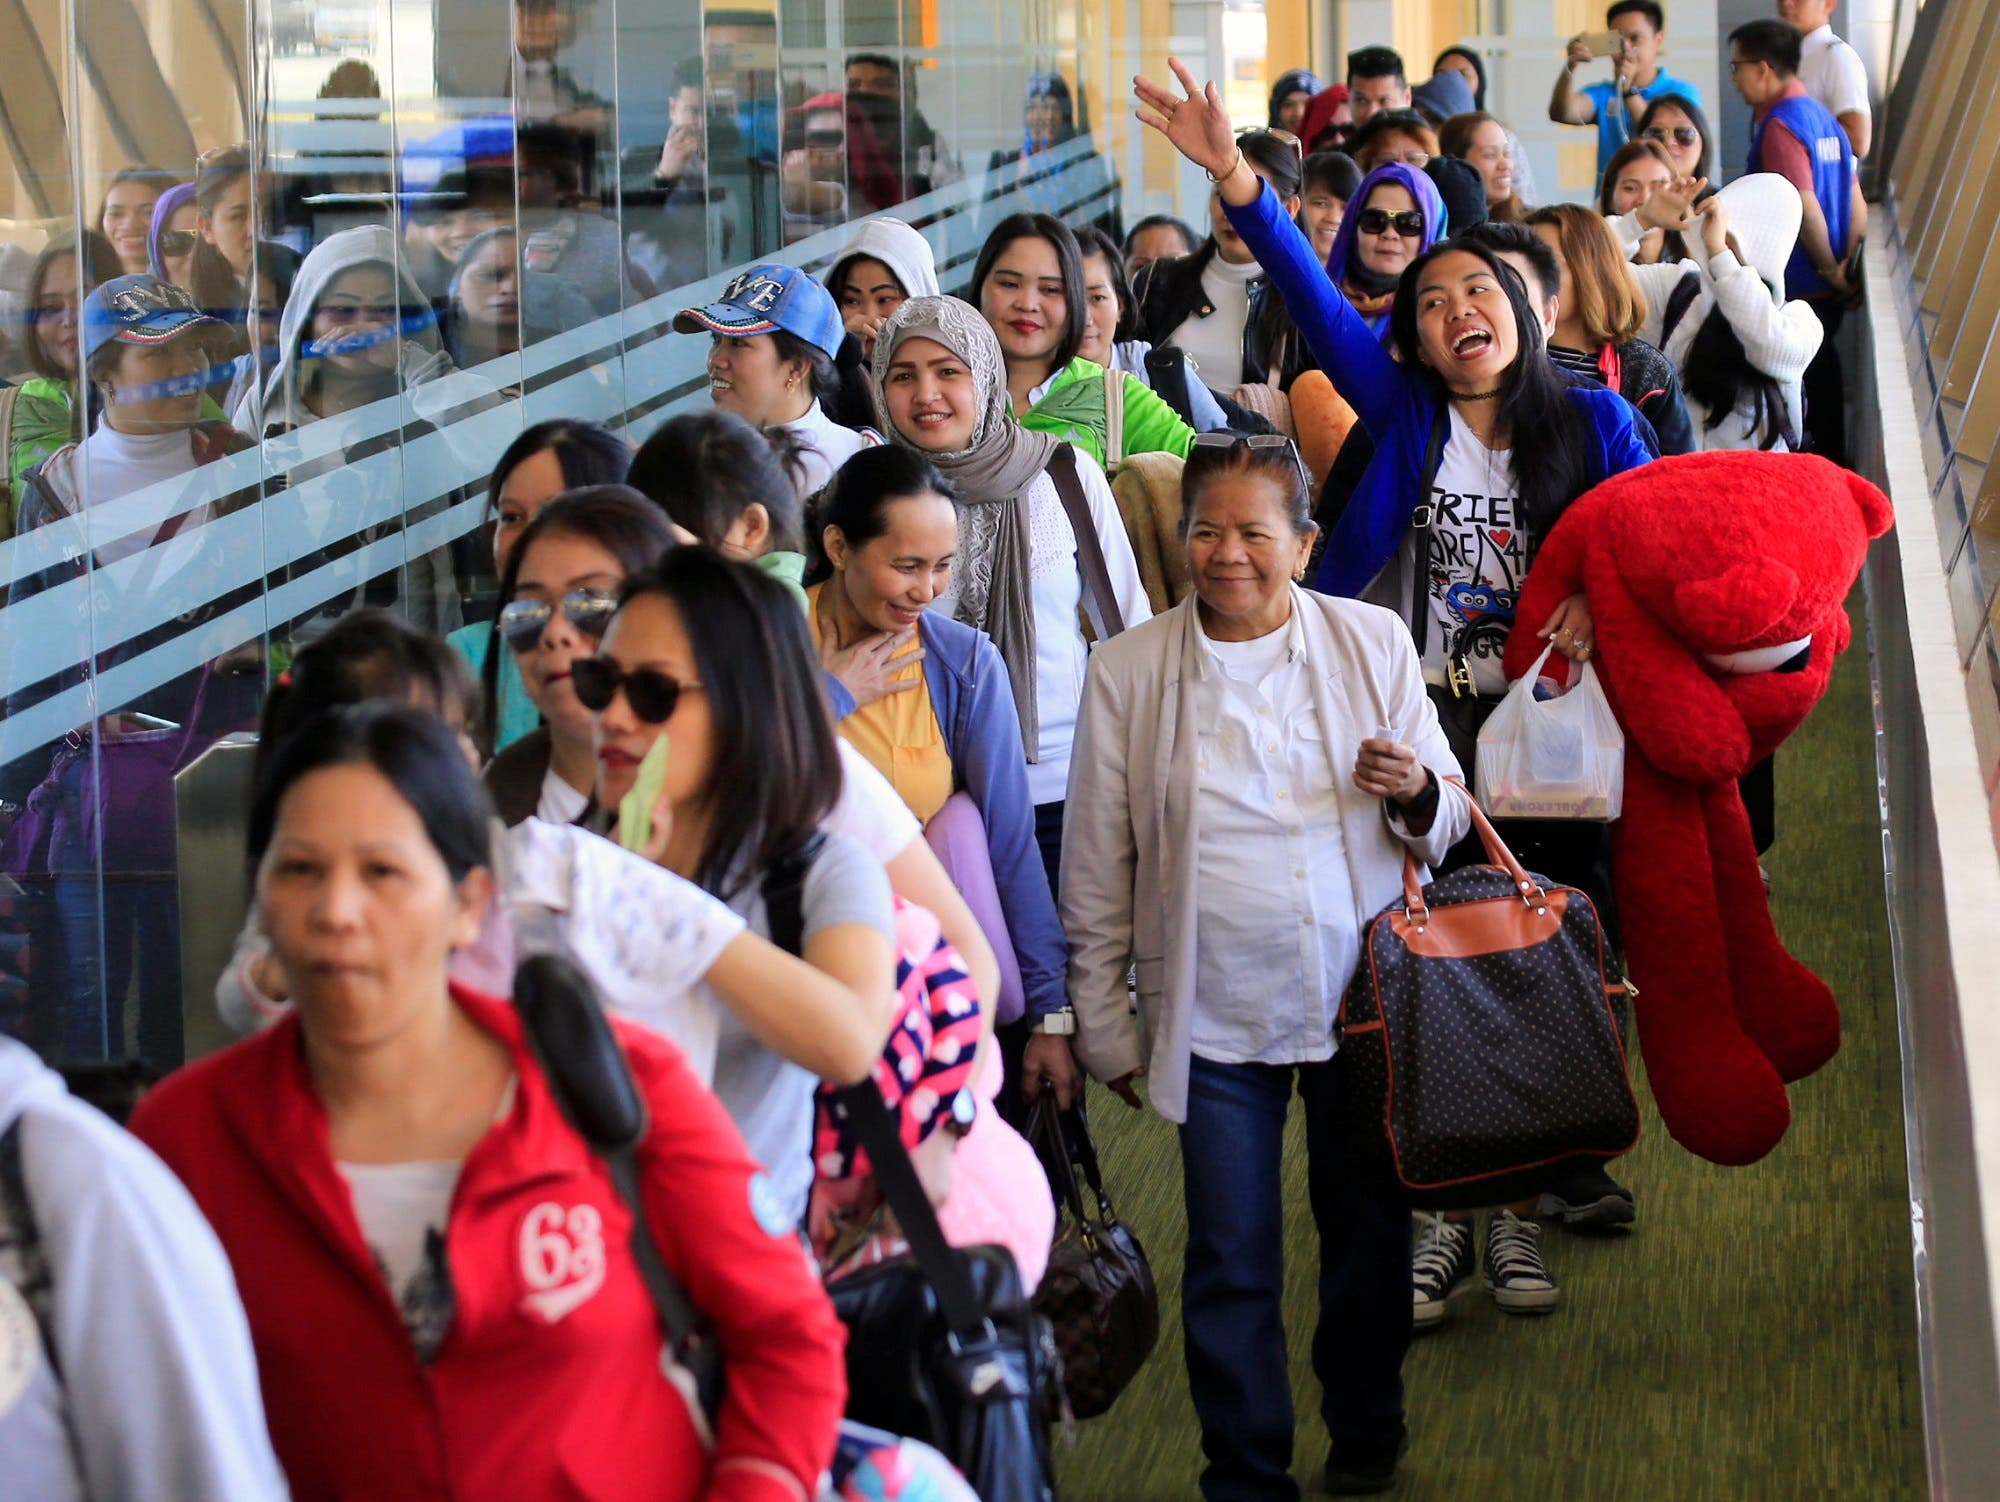 Overseas Filipino Workers (OFW) from Kuwait arrive at the Ninoy Aquino International Airport, following President Rodrigo Duterte's call to evacuate workers after a Filipina was found dead in a freezer, in Pasay city, Metro Manila, Philippines February 23, 2018, (Reuters)